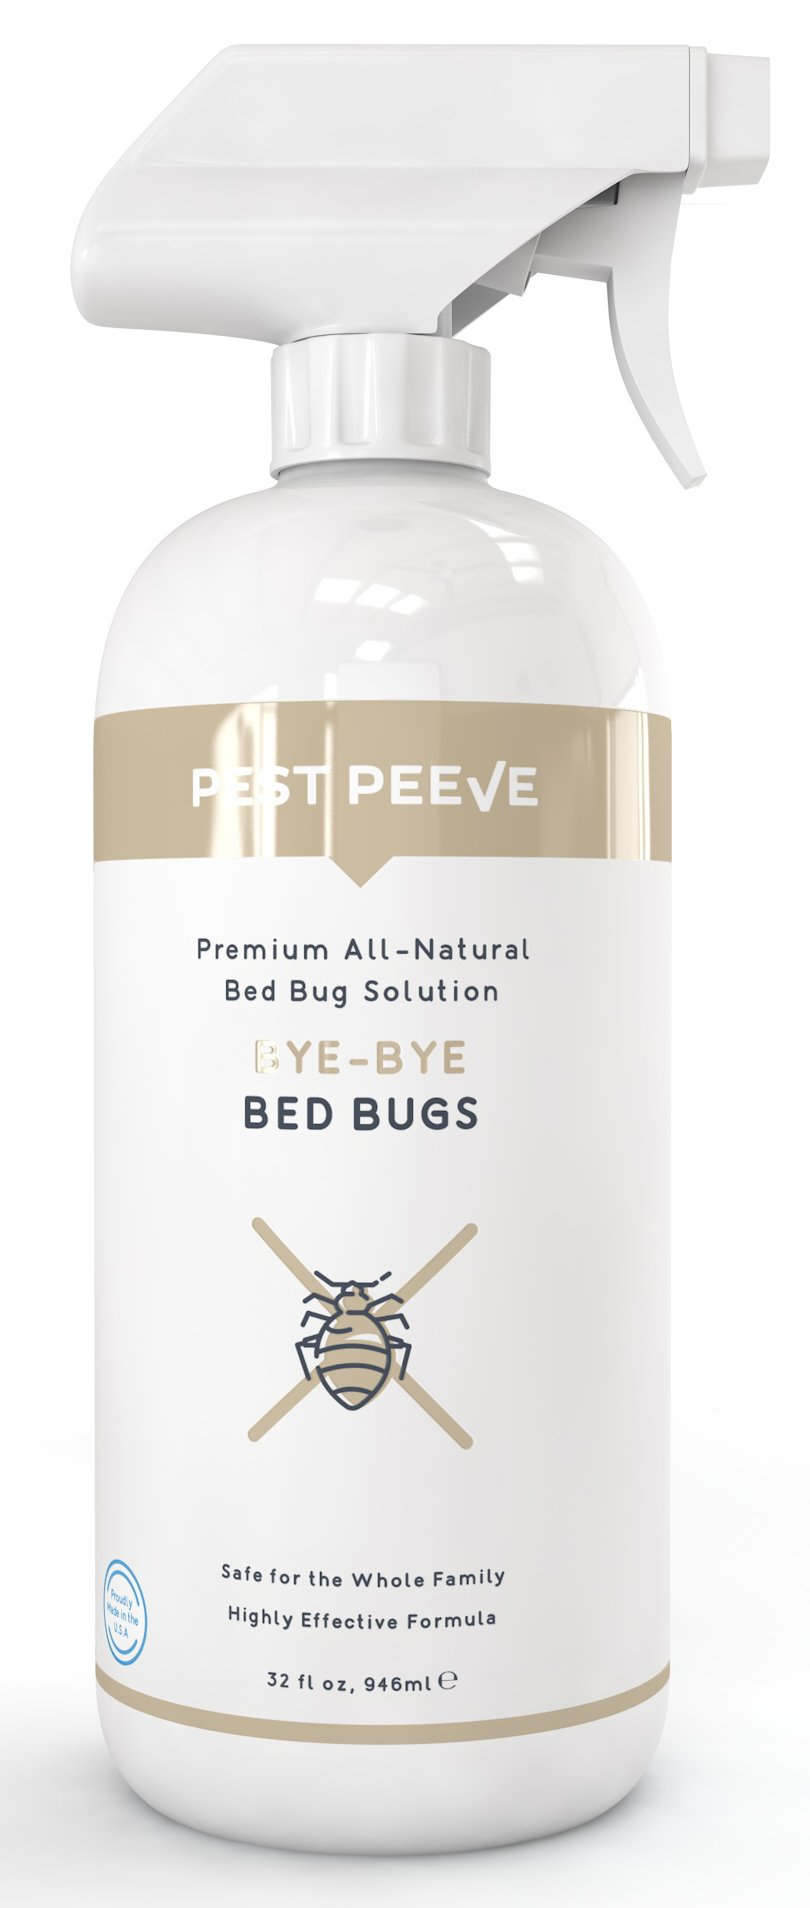 Bye-Bye Bed Bugs - Powerful, Natural Bedbug Killer Spray - Home Defense Treatment - Eco-friendly and Safe for the Family (32 oz) Review